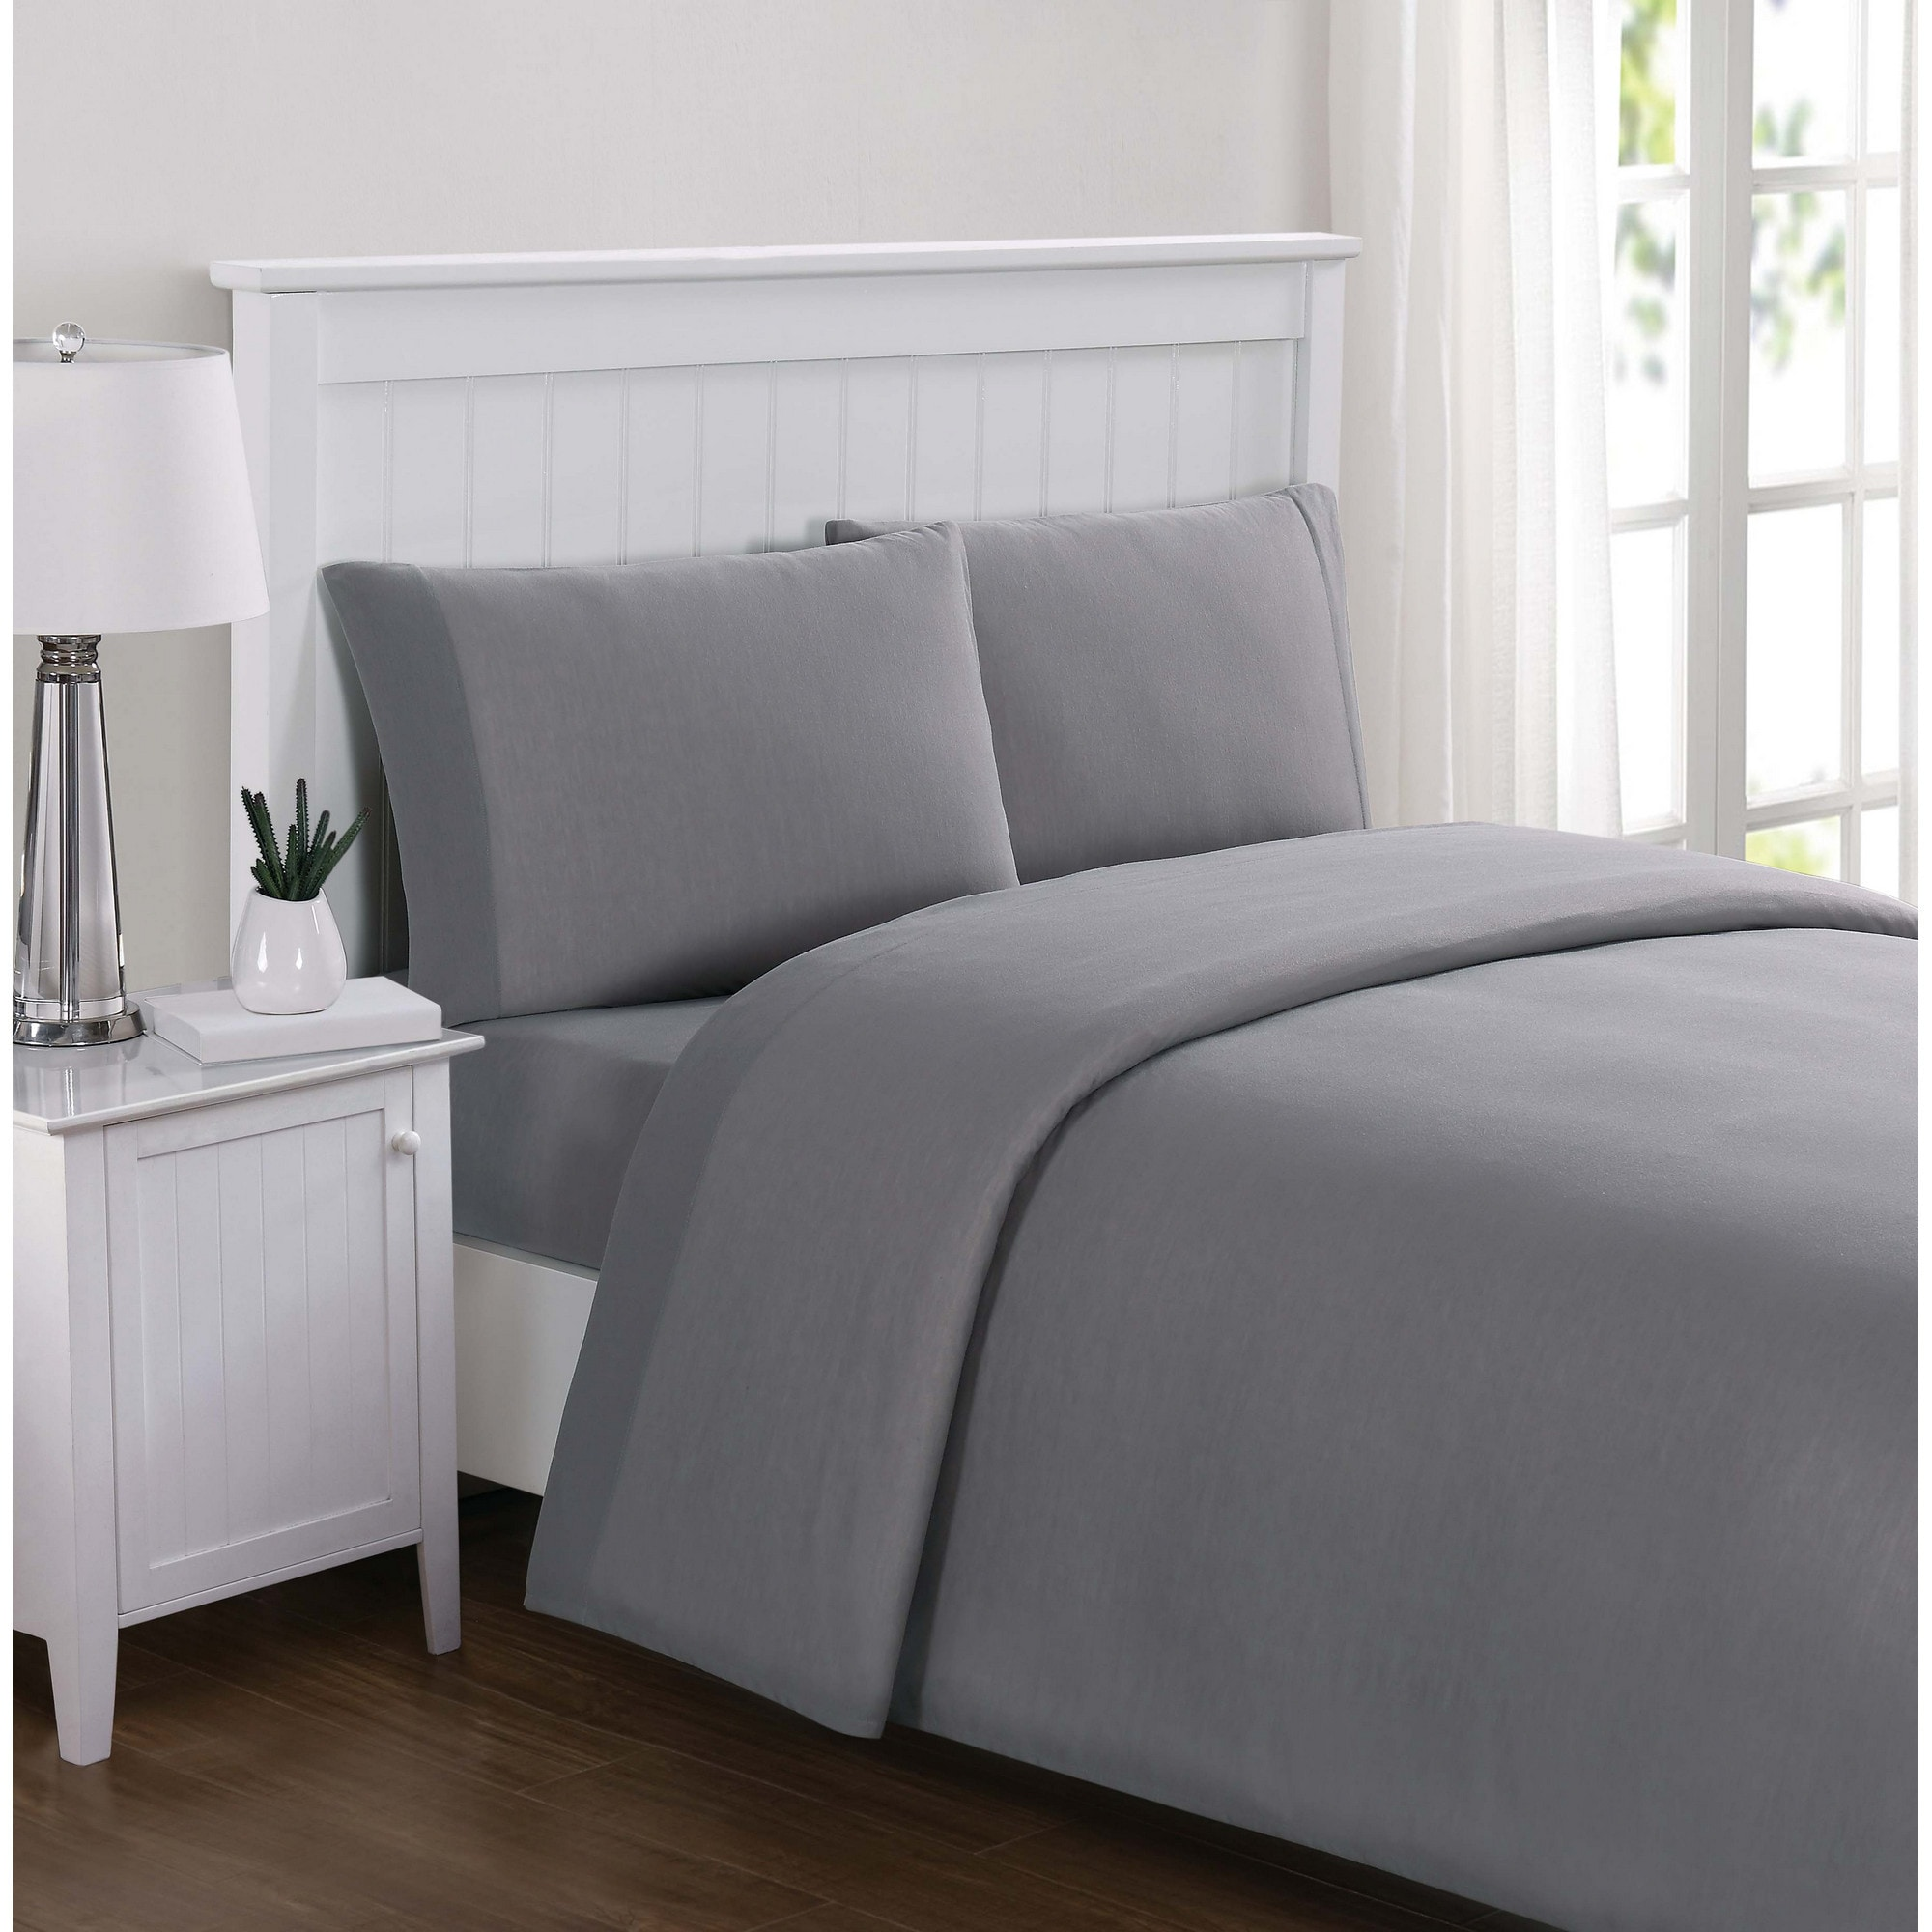 Truly Soft Everyday Solid Jersey Sheet Sets Free Shipping On Orders Over 45 20105087